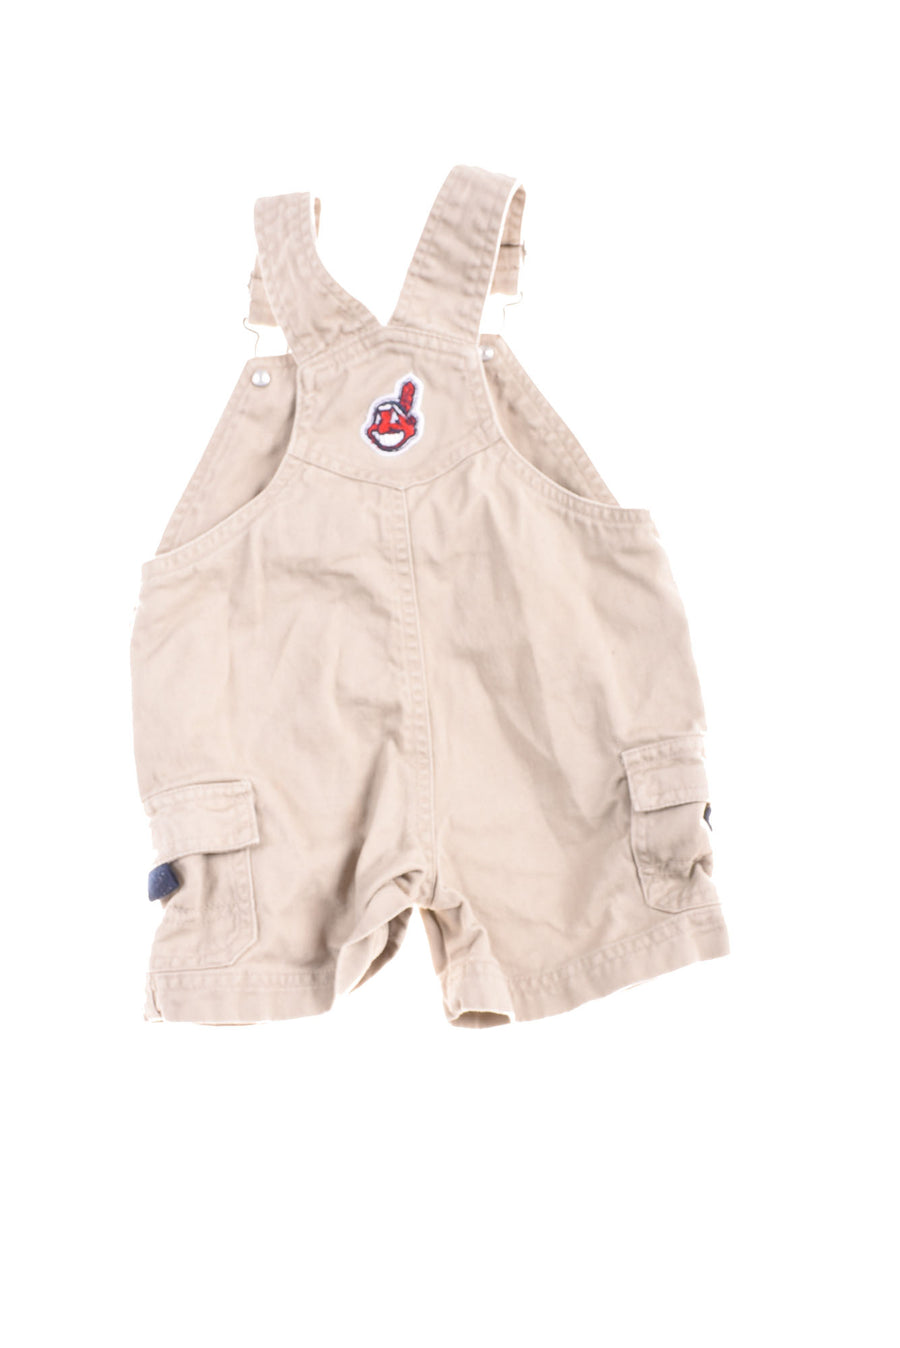 Baby Boy's Cleveland Indians Overalls By No Brand